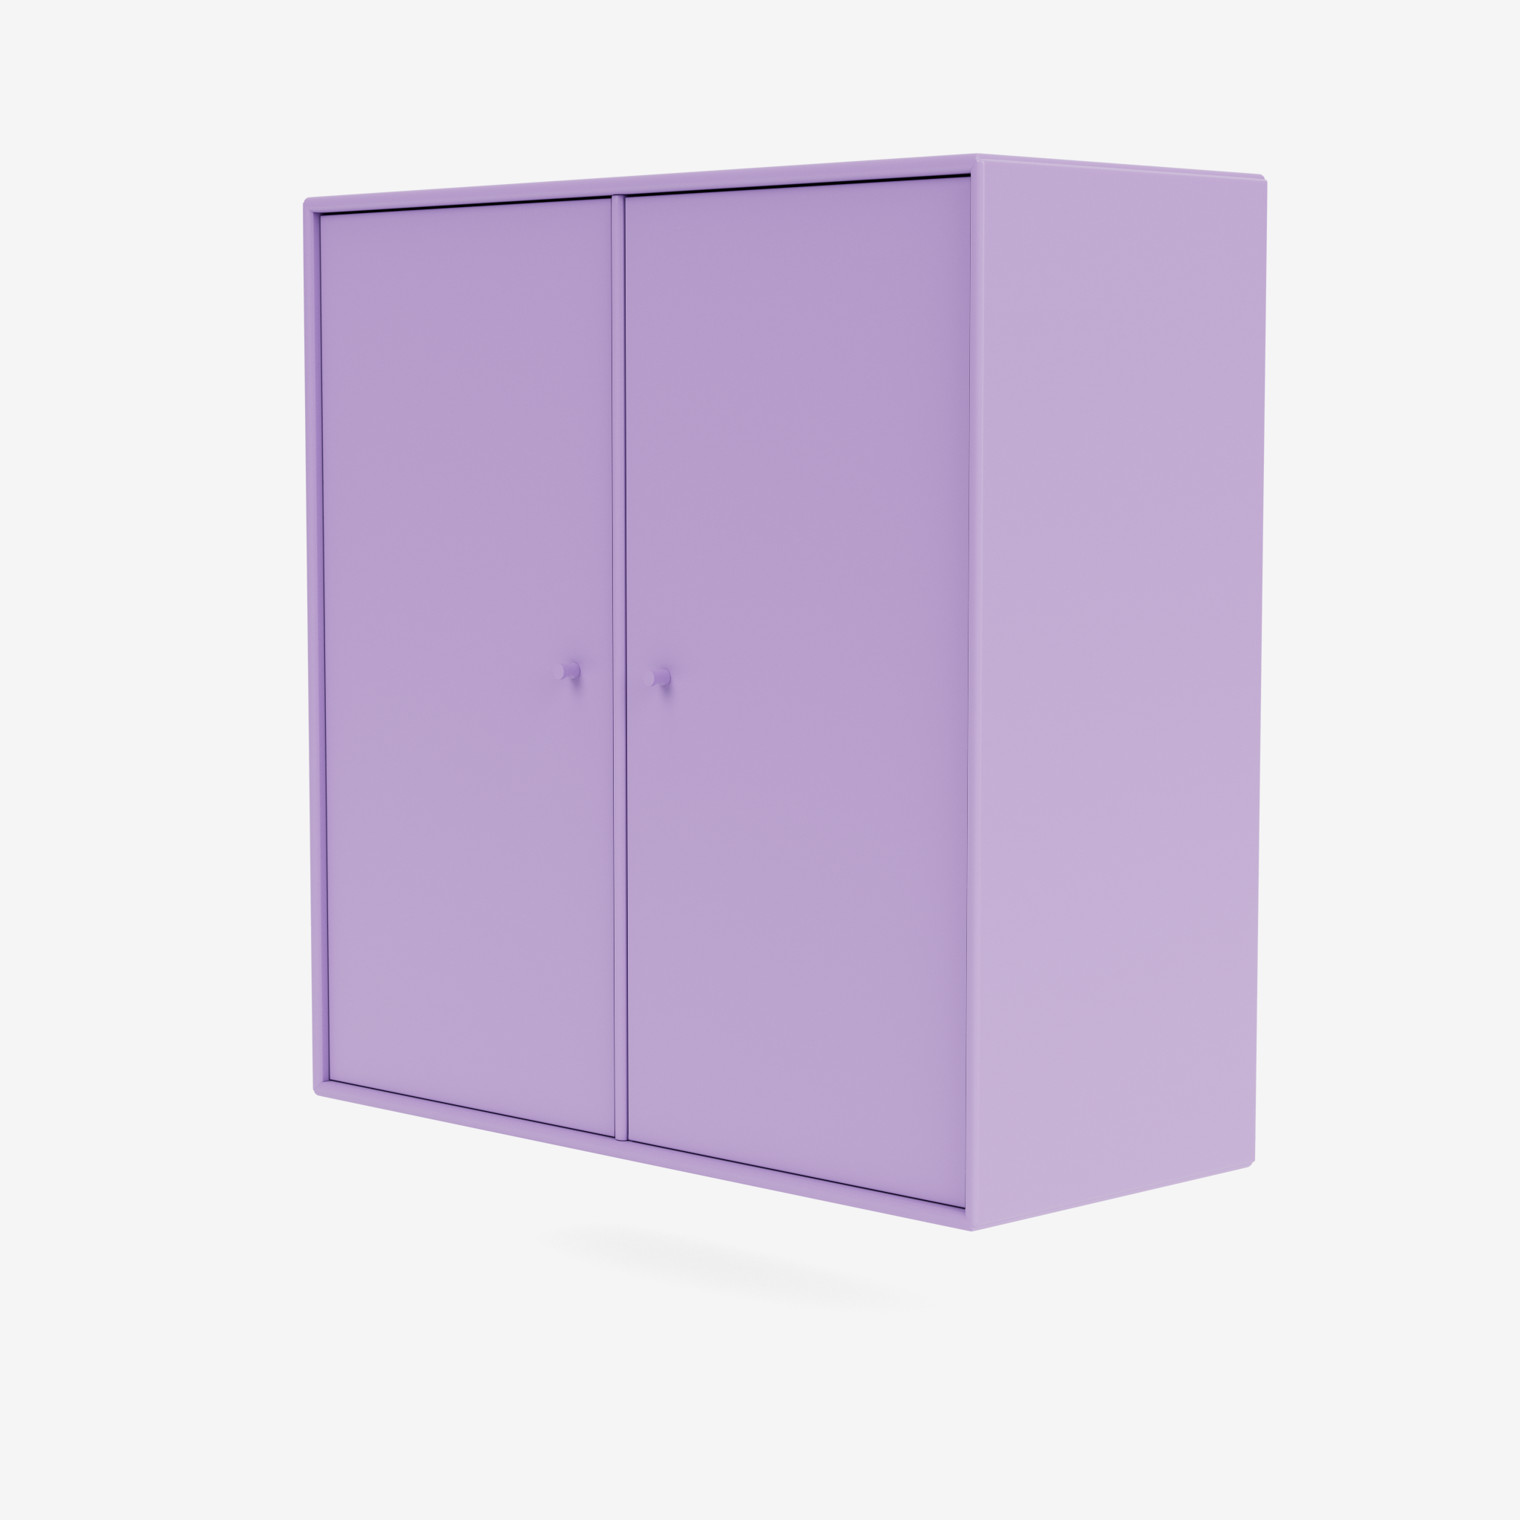 Cabinet 1118 - COVER